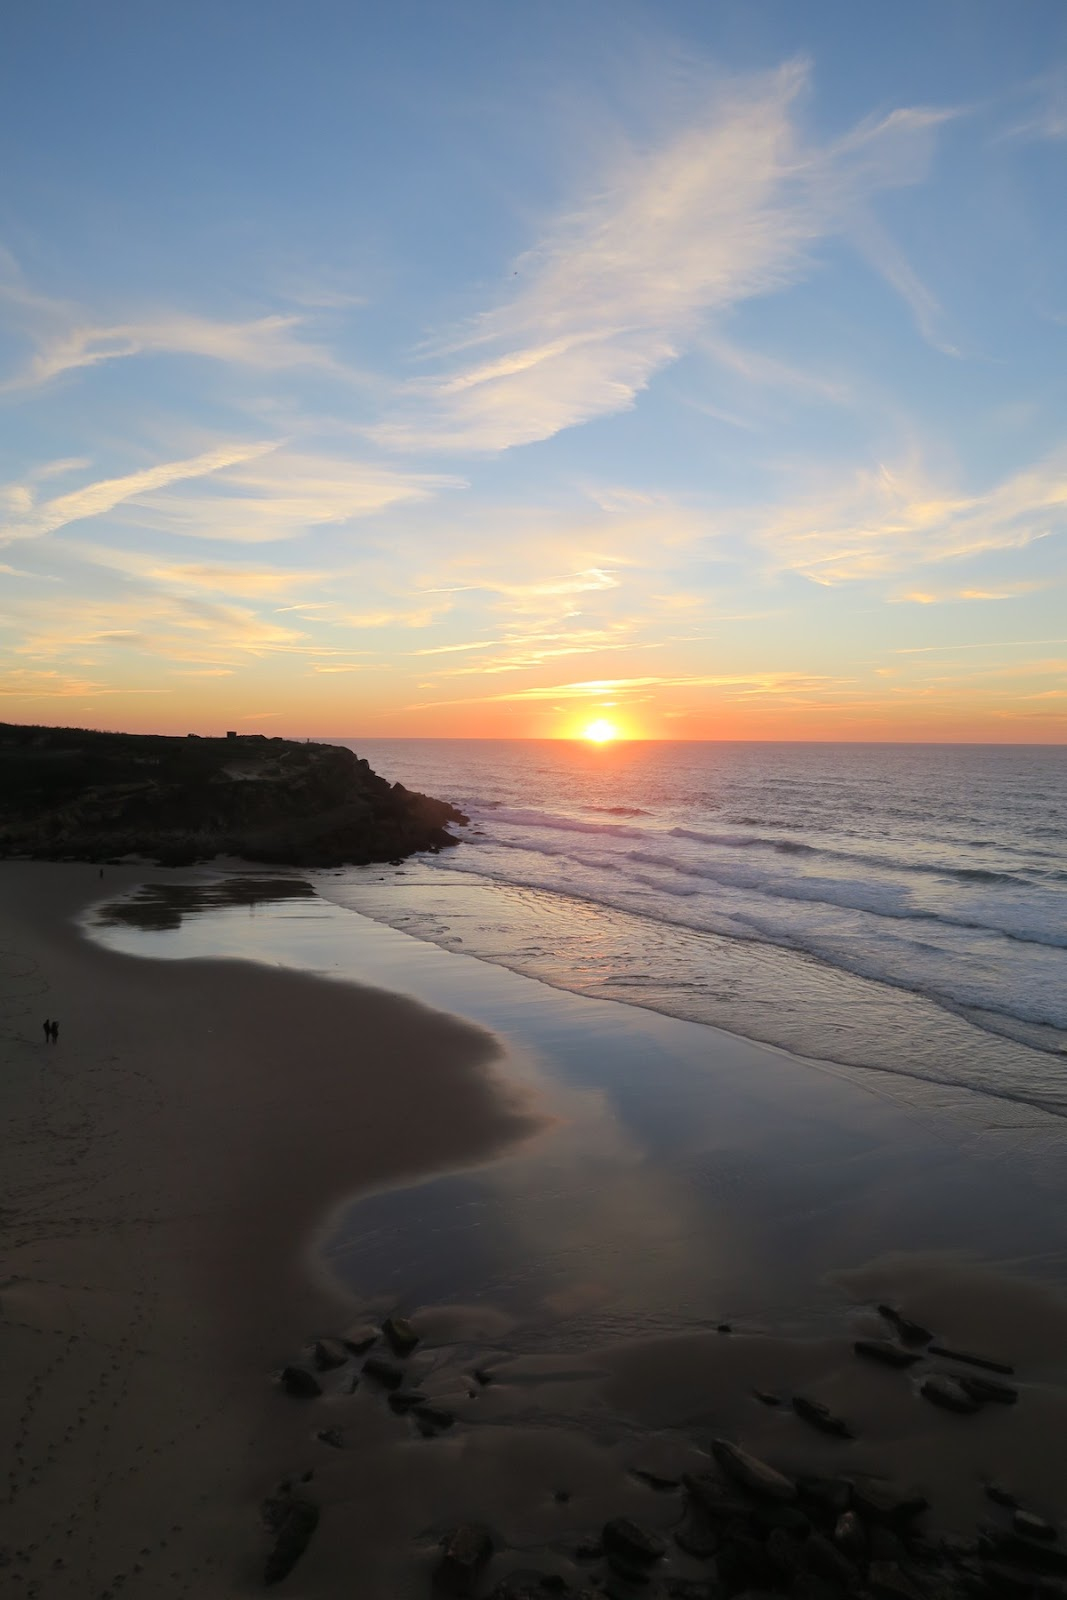 This is a picture of the sunset in Sintra, at Praia das Macas.